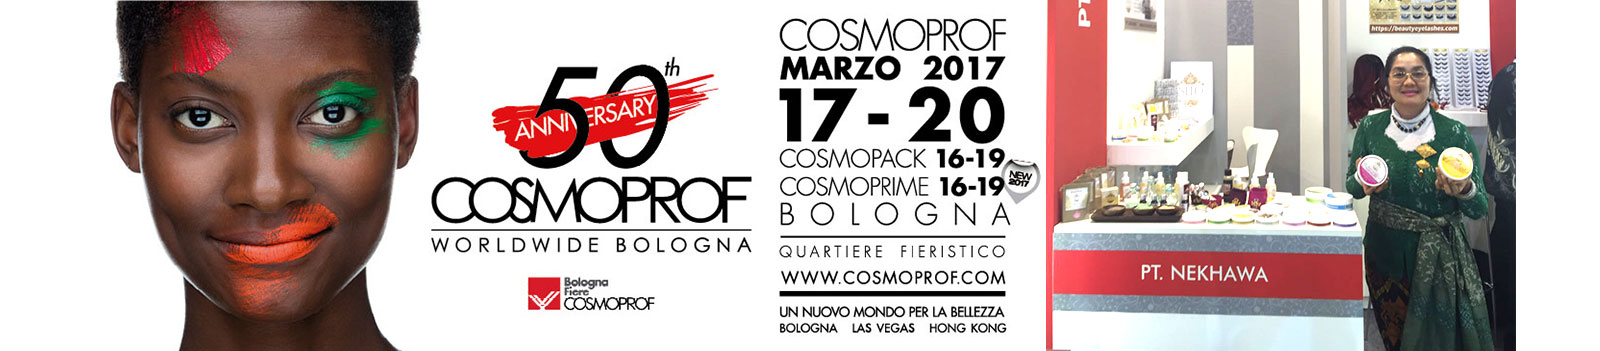 A Cosmoprof Worldwide Bologna La Bellezza Multietnica Di Tones Of Beauty It 3